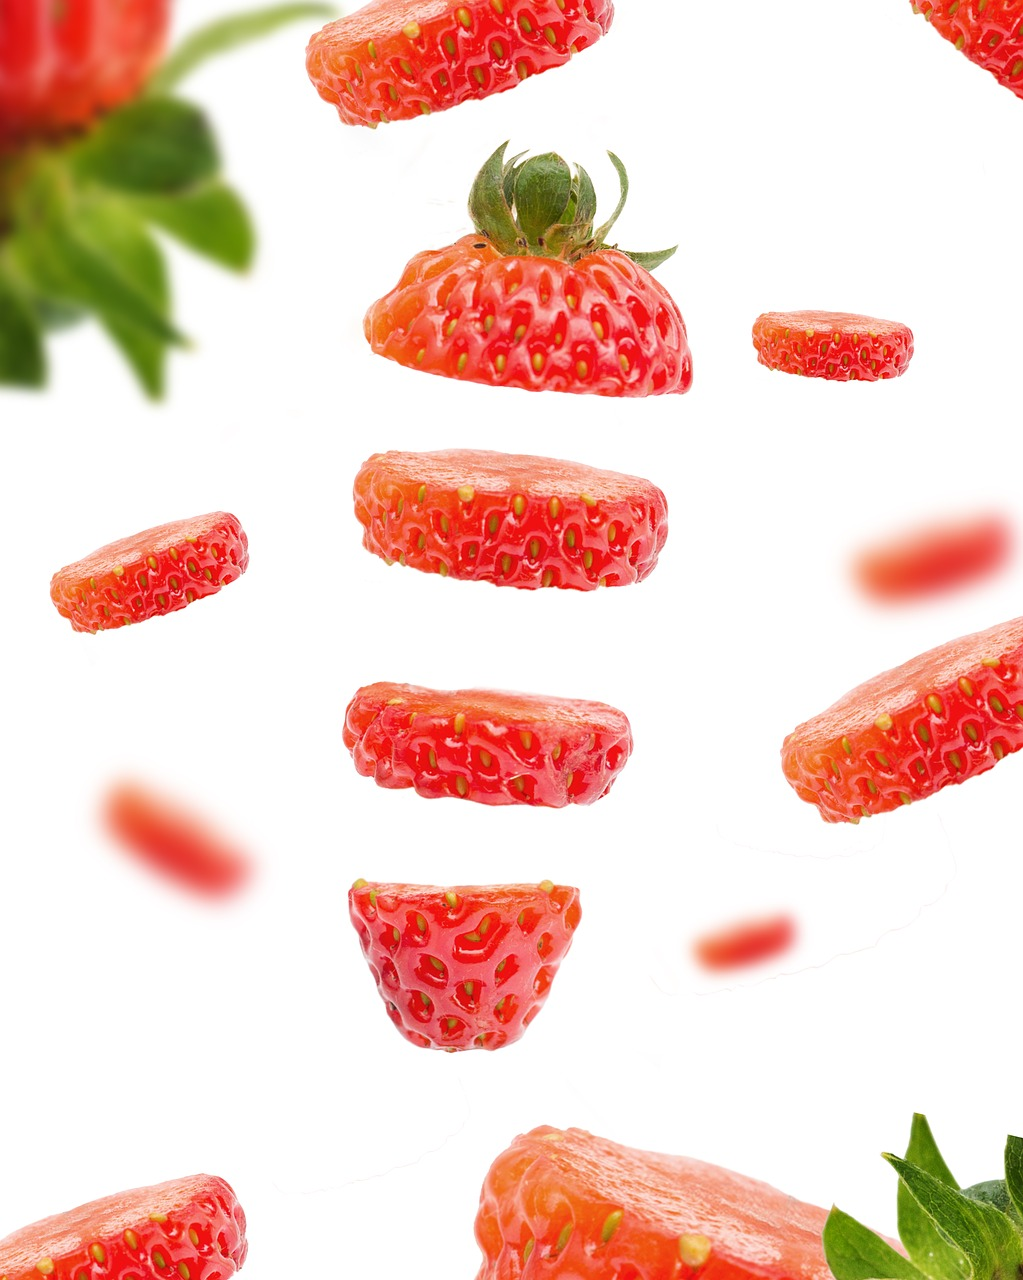 sliced strawberries  strawberries-rich  fruit game free photo